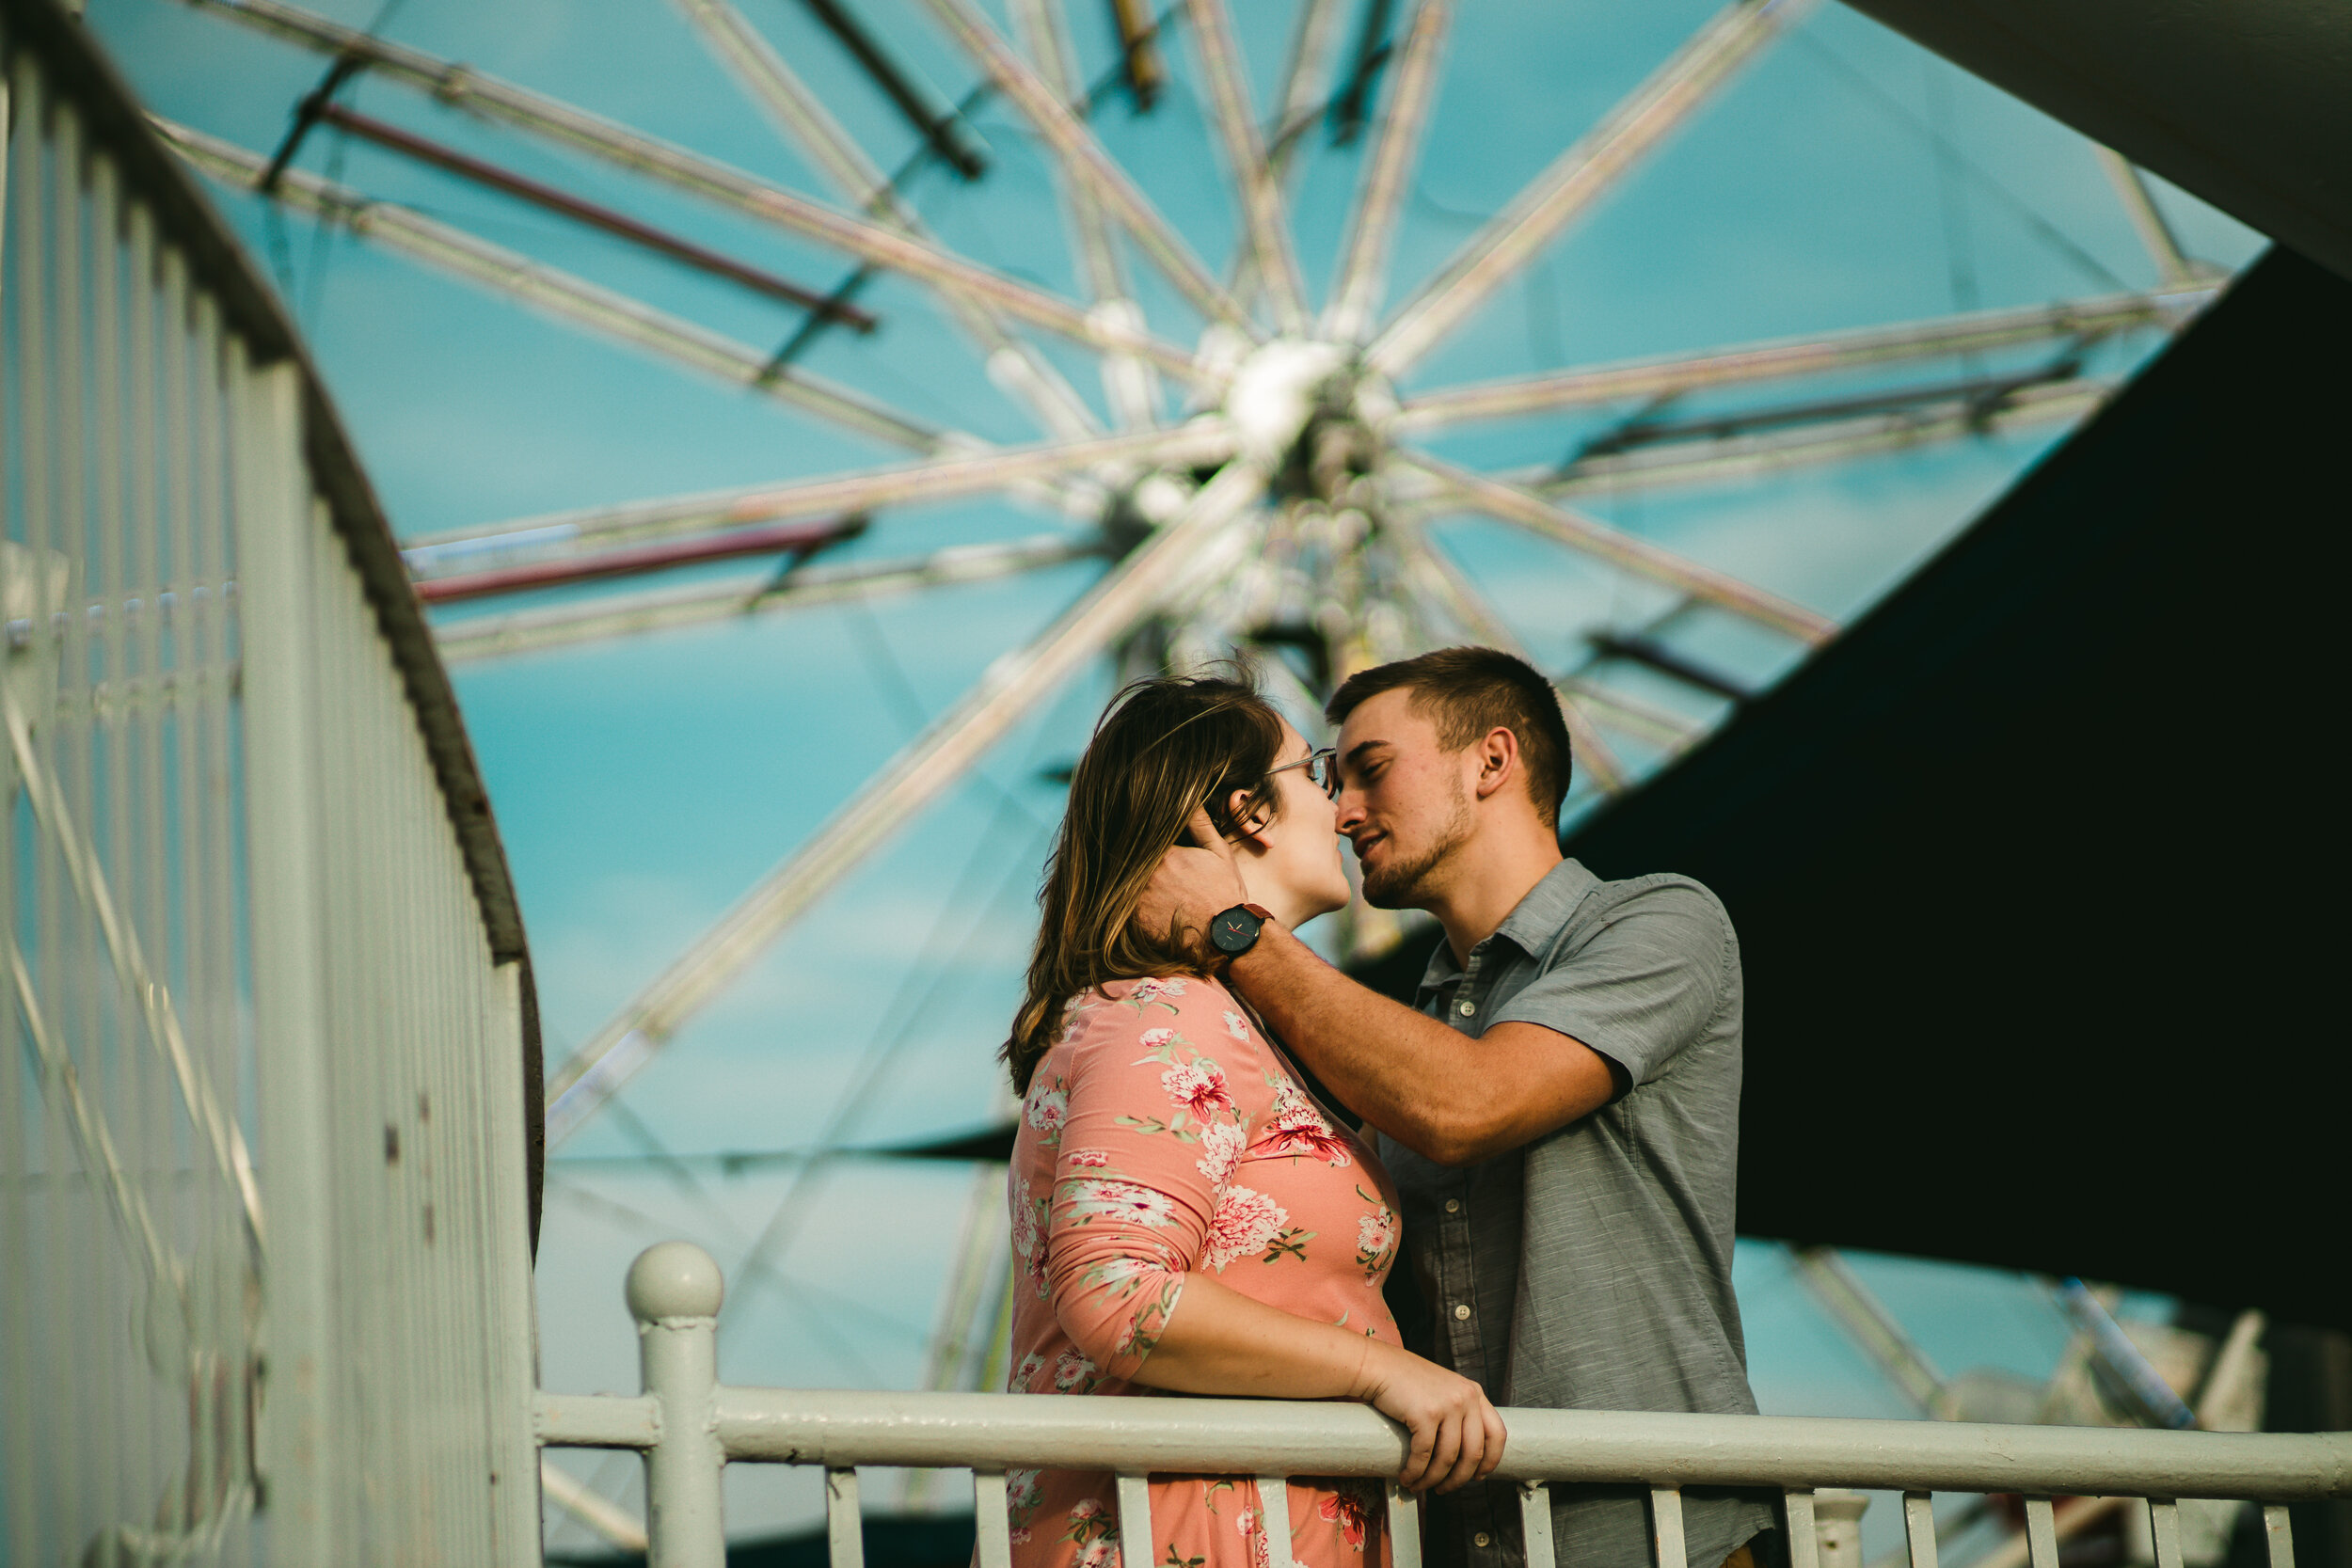 lindsay & tucker - an engagement @ city museum